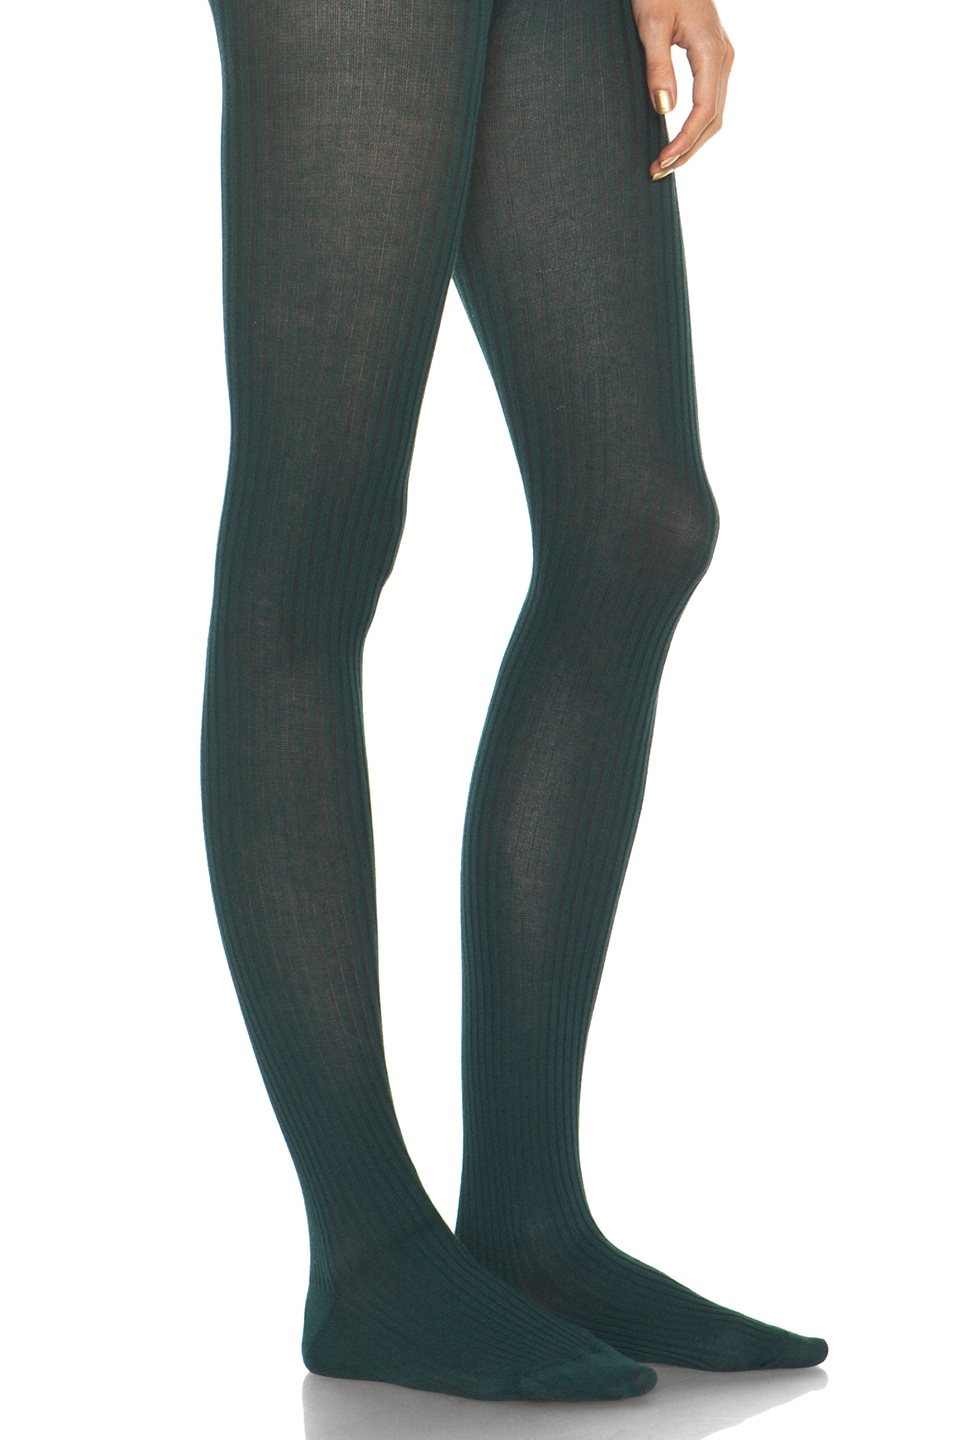 Image 3 of A.P.C. Collant Tights in Blue Canard